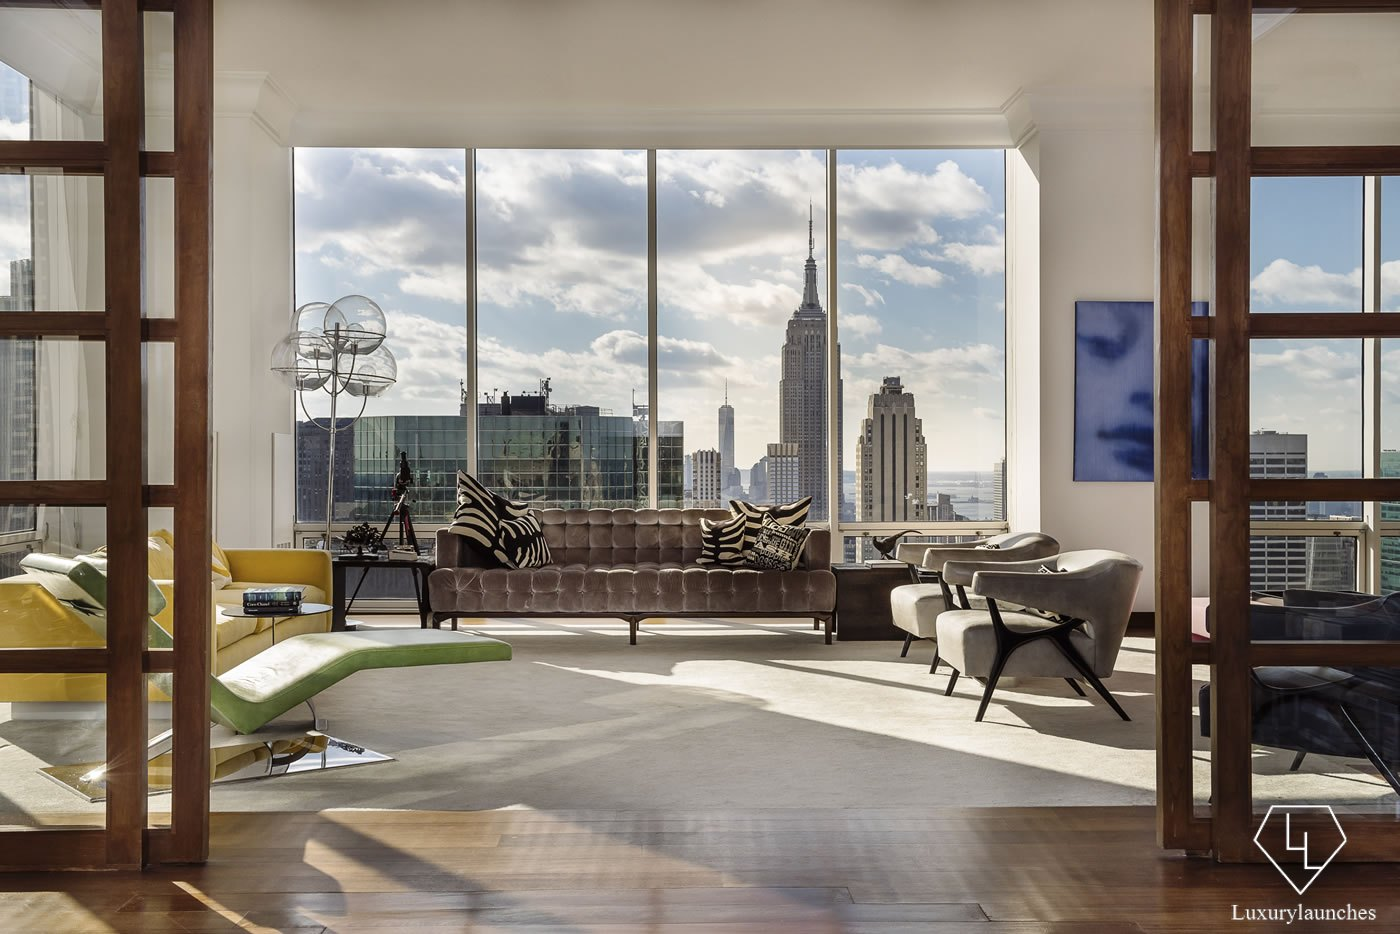 Guccis 38 million penthouse in Manhattan is up for sale